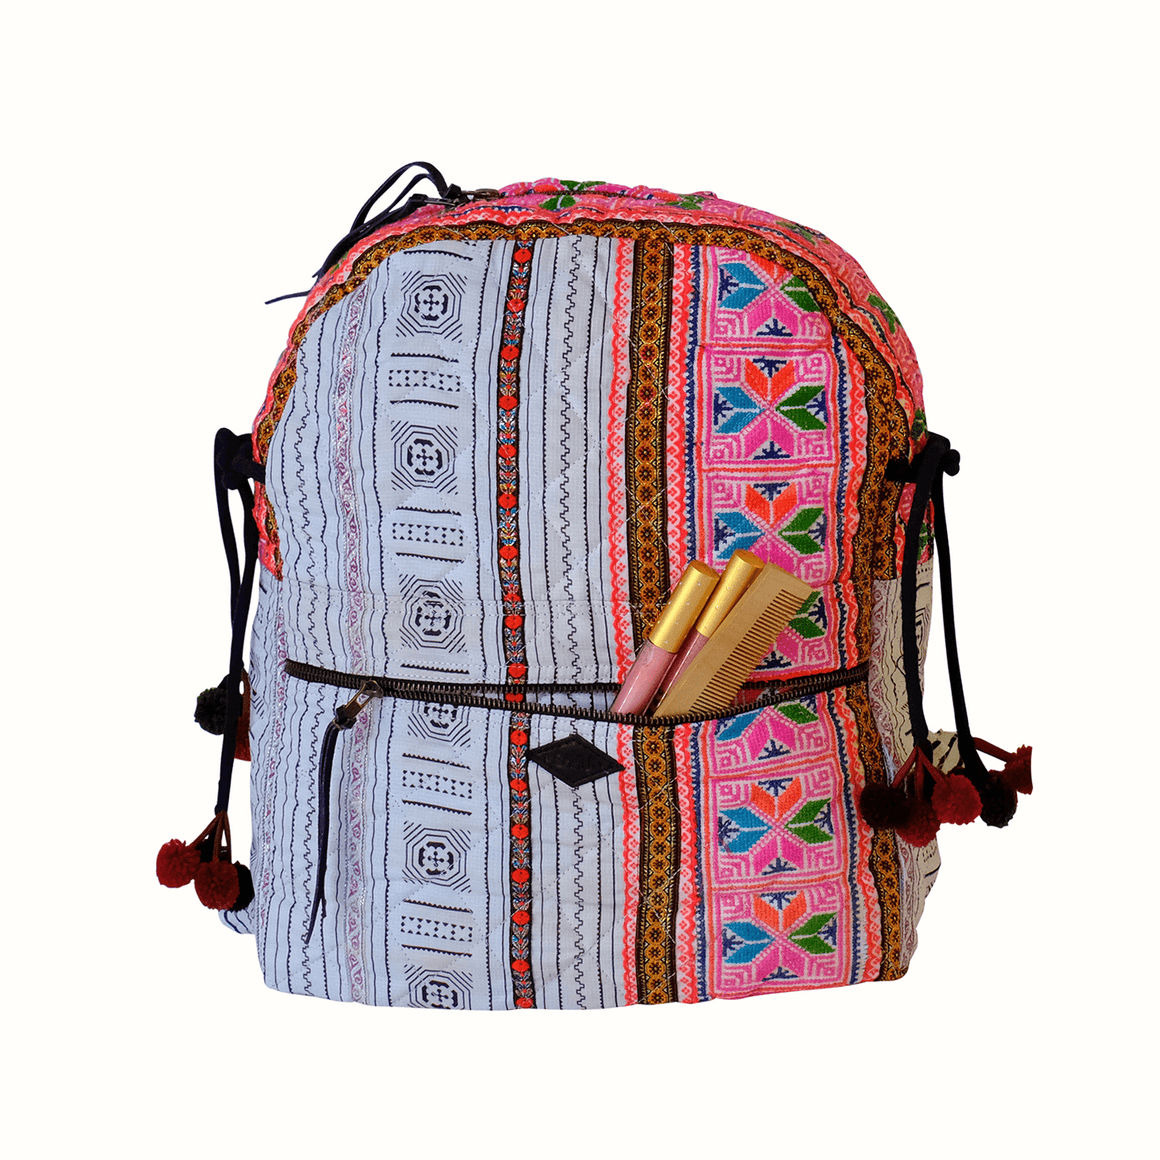 Samui Bags Coral Reef Backpack Handmade Thai Bag